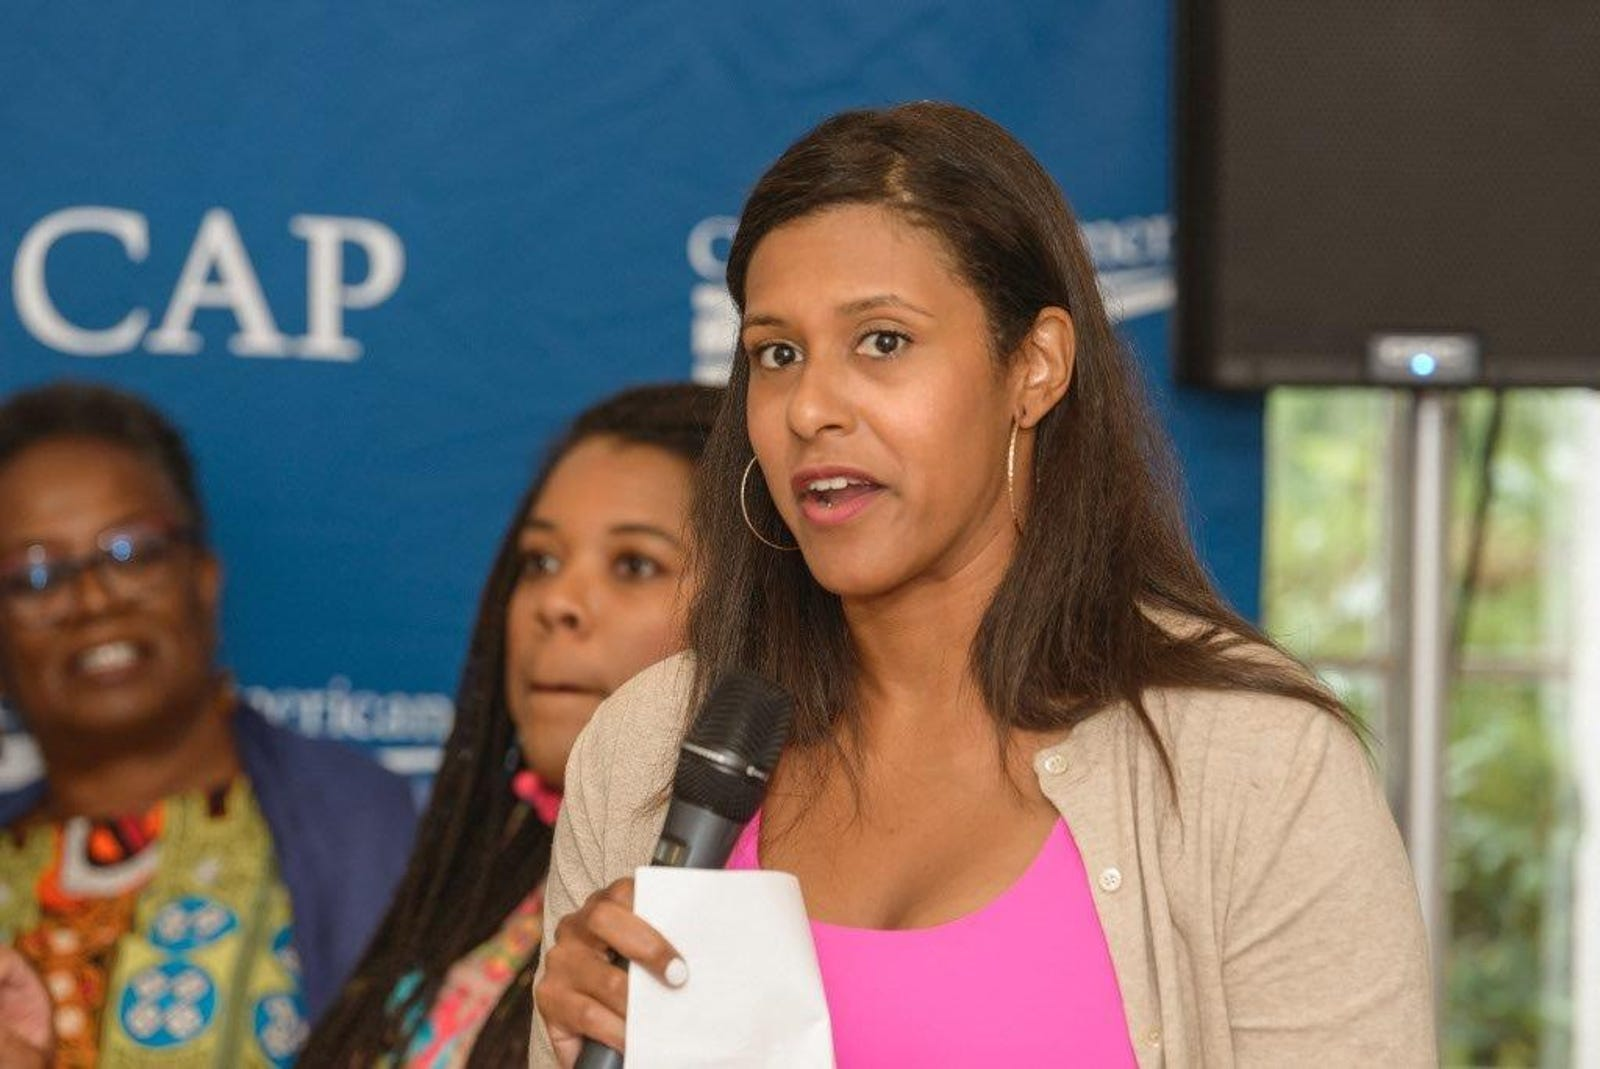 Center for American Progress' Danyelle Solomon speaks at their event at Lola's in Martha's Vineyard, Monday, Aug. 13, 2018.